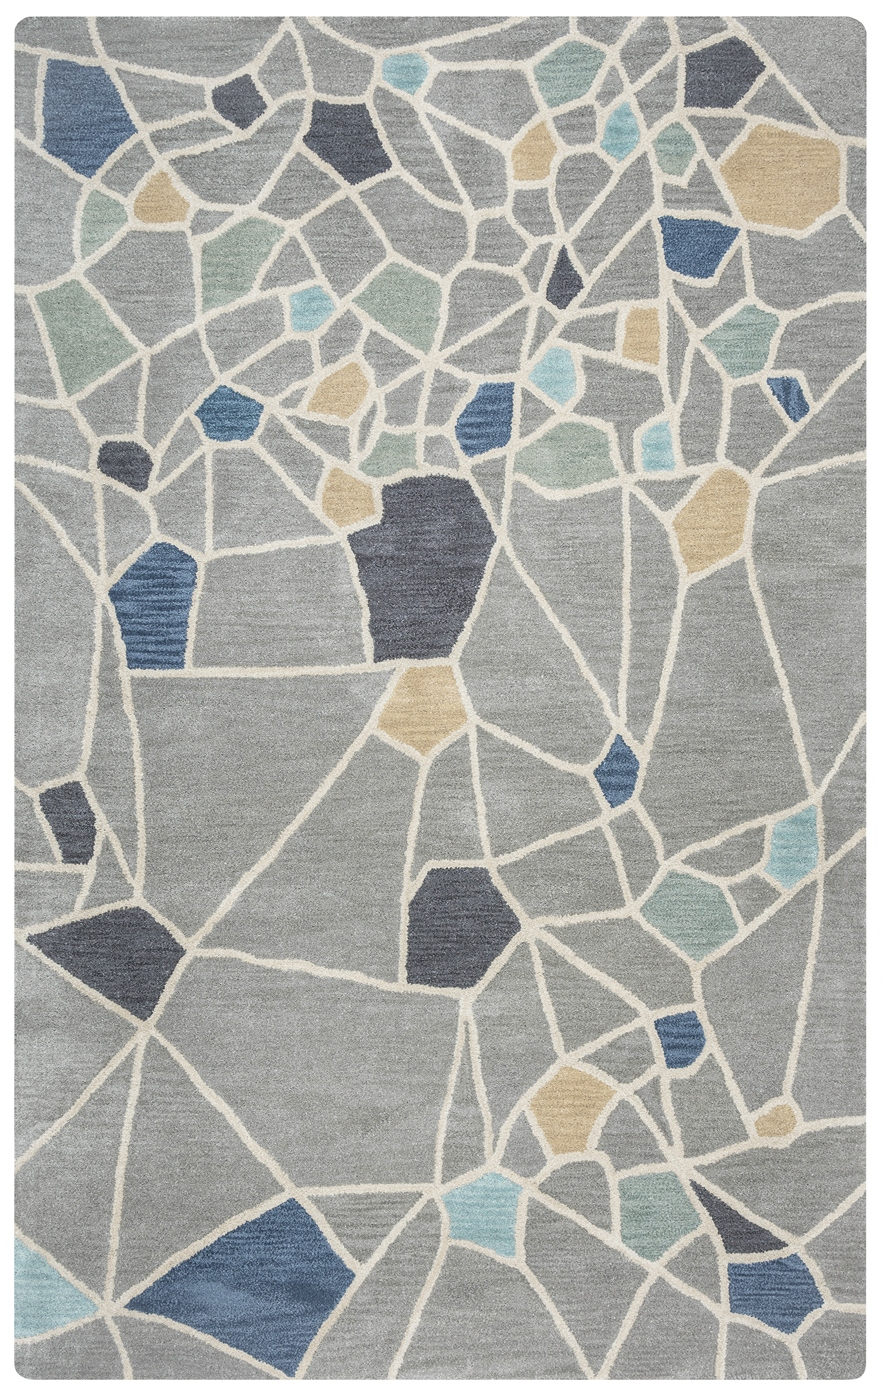 Marianna Fields Abstract Cracks Wool Area Rug In Grey Blue